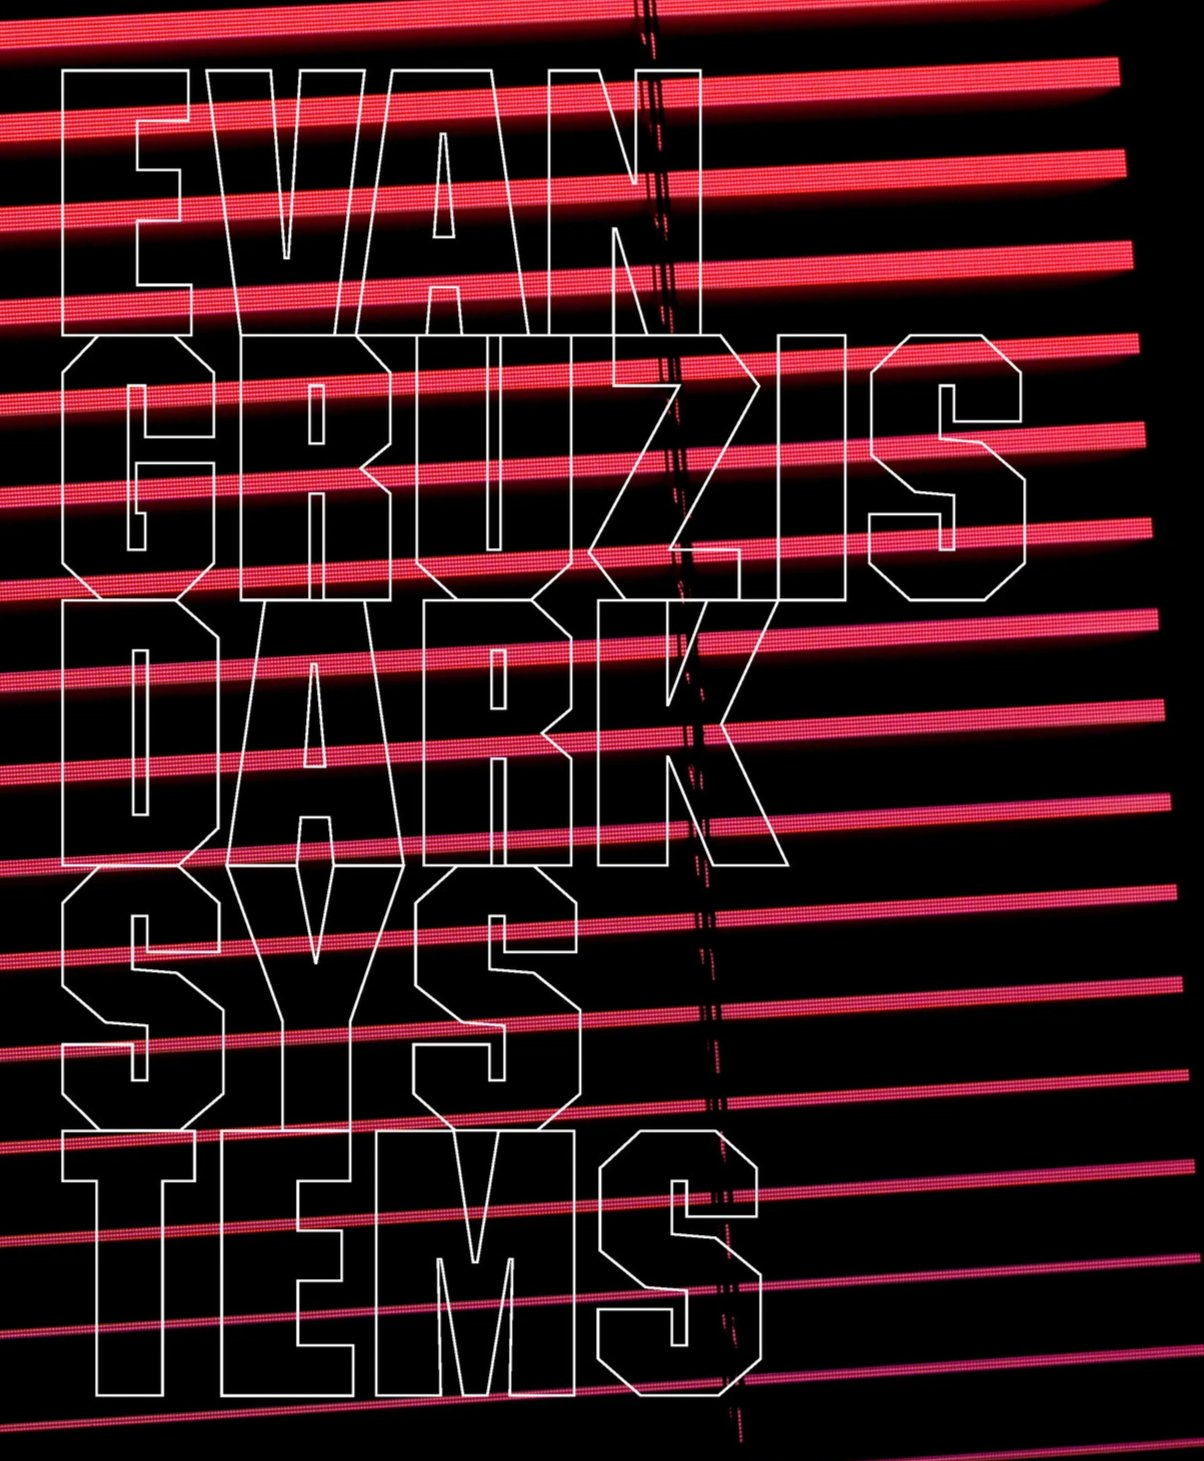 Evan Gruzis: Dark Systems - Book at Kavi Gupta Editions